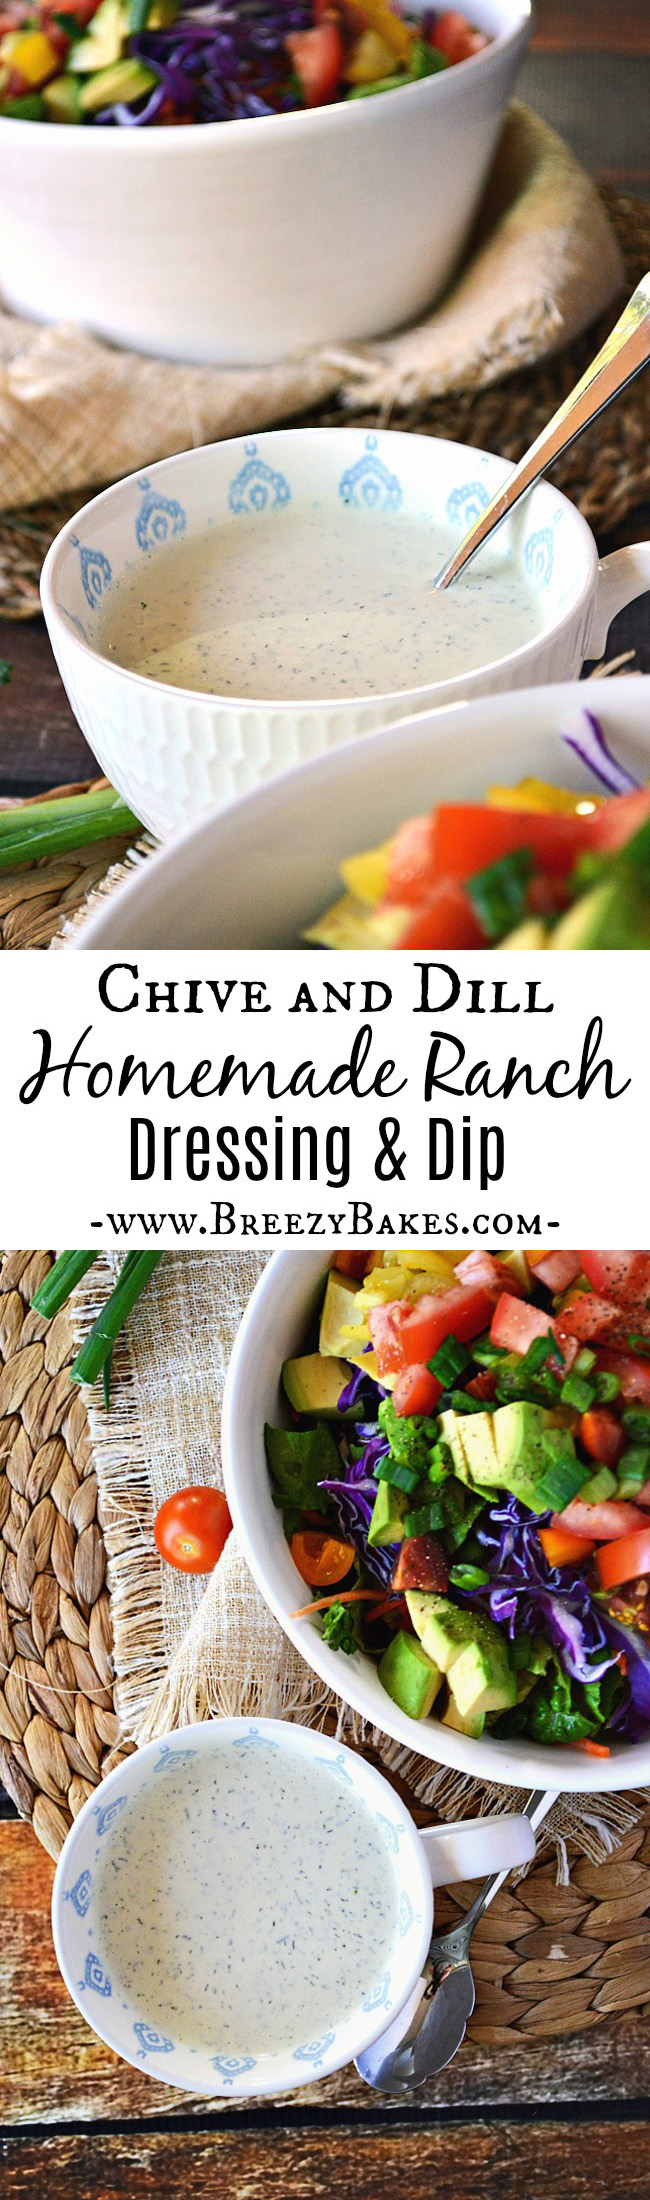 Skip the bottled stuff with all the additives and opt for this fresh and flavorful Homemade Ranch Dressing and Dip. It comes together in minutes and you can drizzle it on your favorite salads and sandwiches or use it as a savory dip.